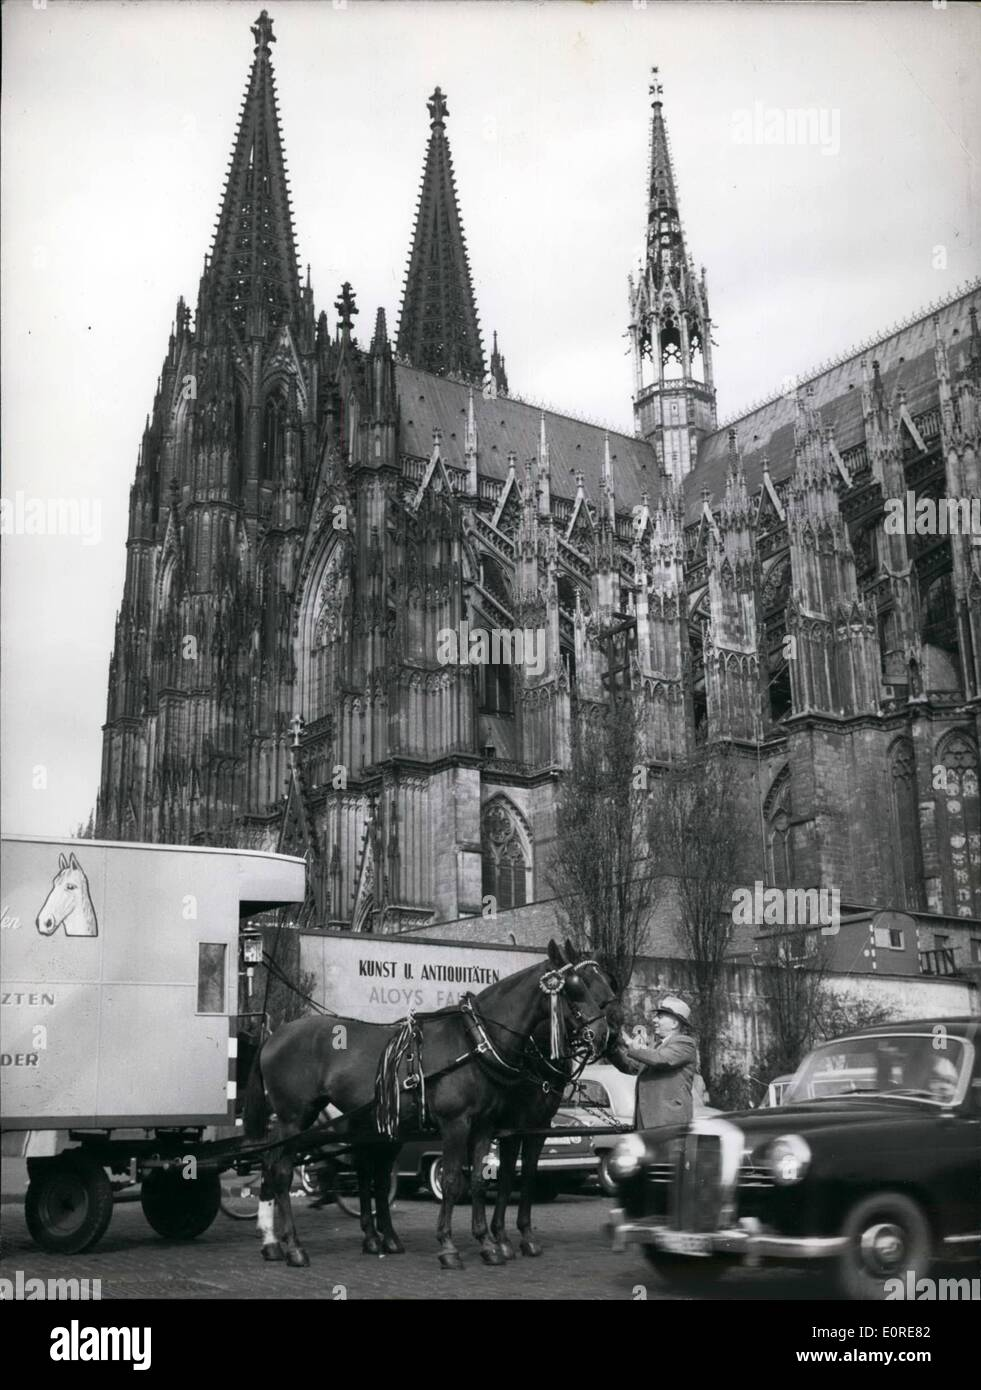 Apr. 04, 1959 - The last coachman of Cologne went on a long trip on April 7th. With his two horses, Dora and Merry he intends to go to Holland, Belgium, France, Spain, Portugal Italy and Austria. He has a trailer build from an old furniture truck. By this journey the coachman Franz Heuser wants to advertise for his home town Cologne. He has Cologne's coat of arms attached to his carriage. Photo shows Franz Heuser with his horses in from the Cathedral of Cologne, which he will not see during the next two or three years. - Stock Image